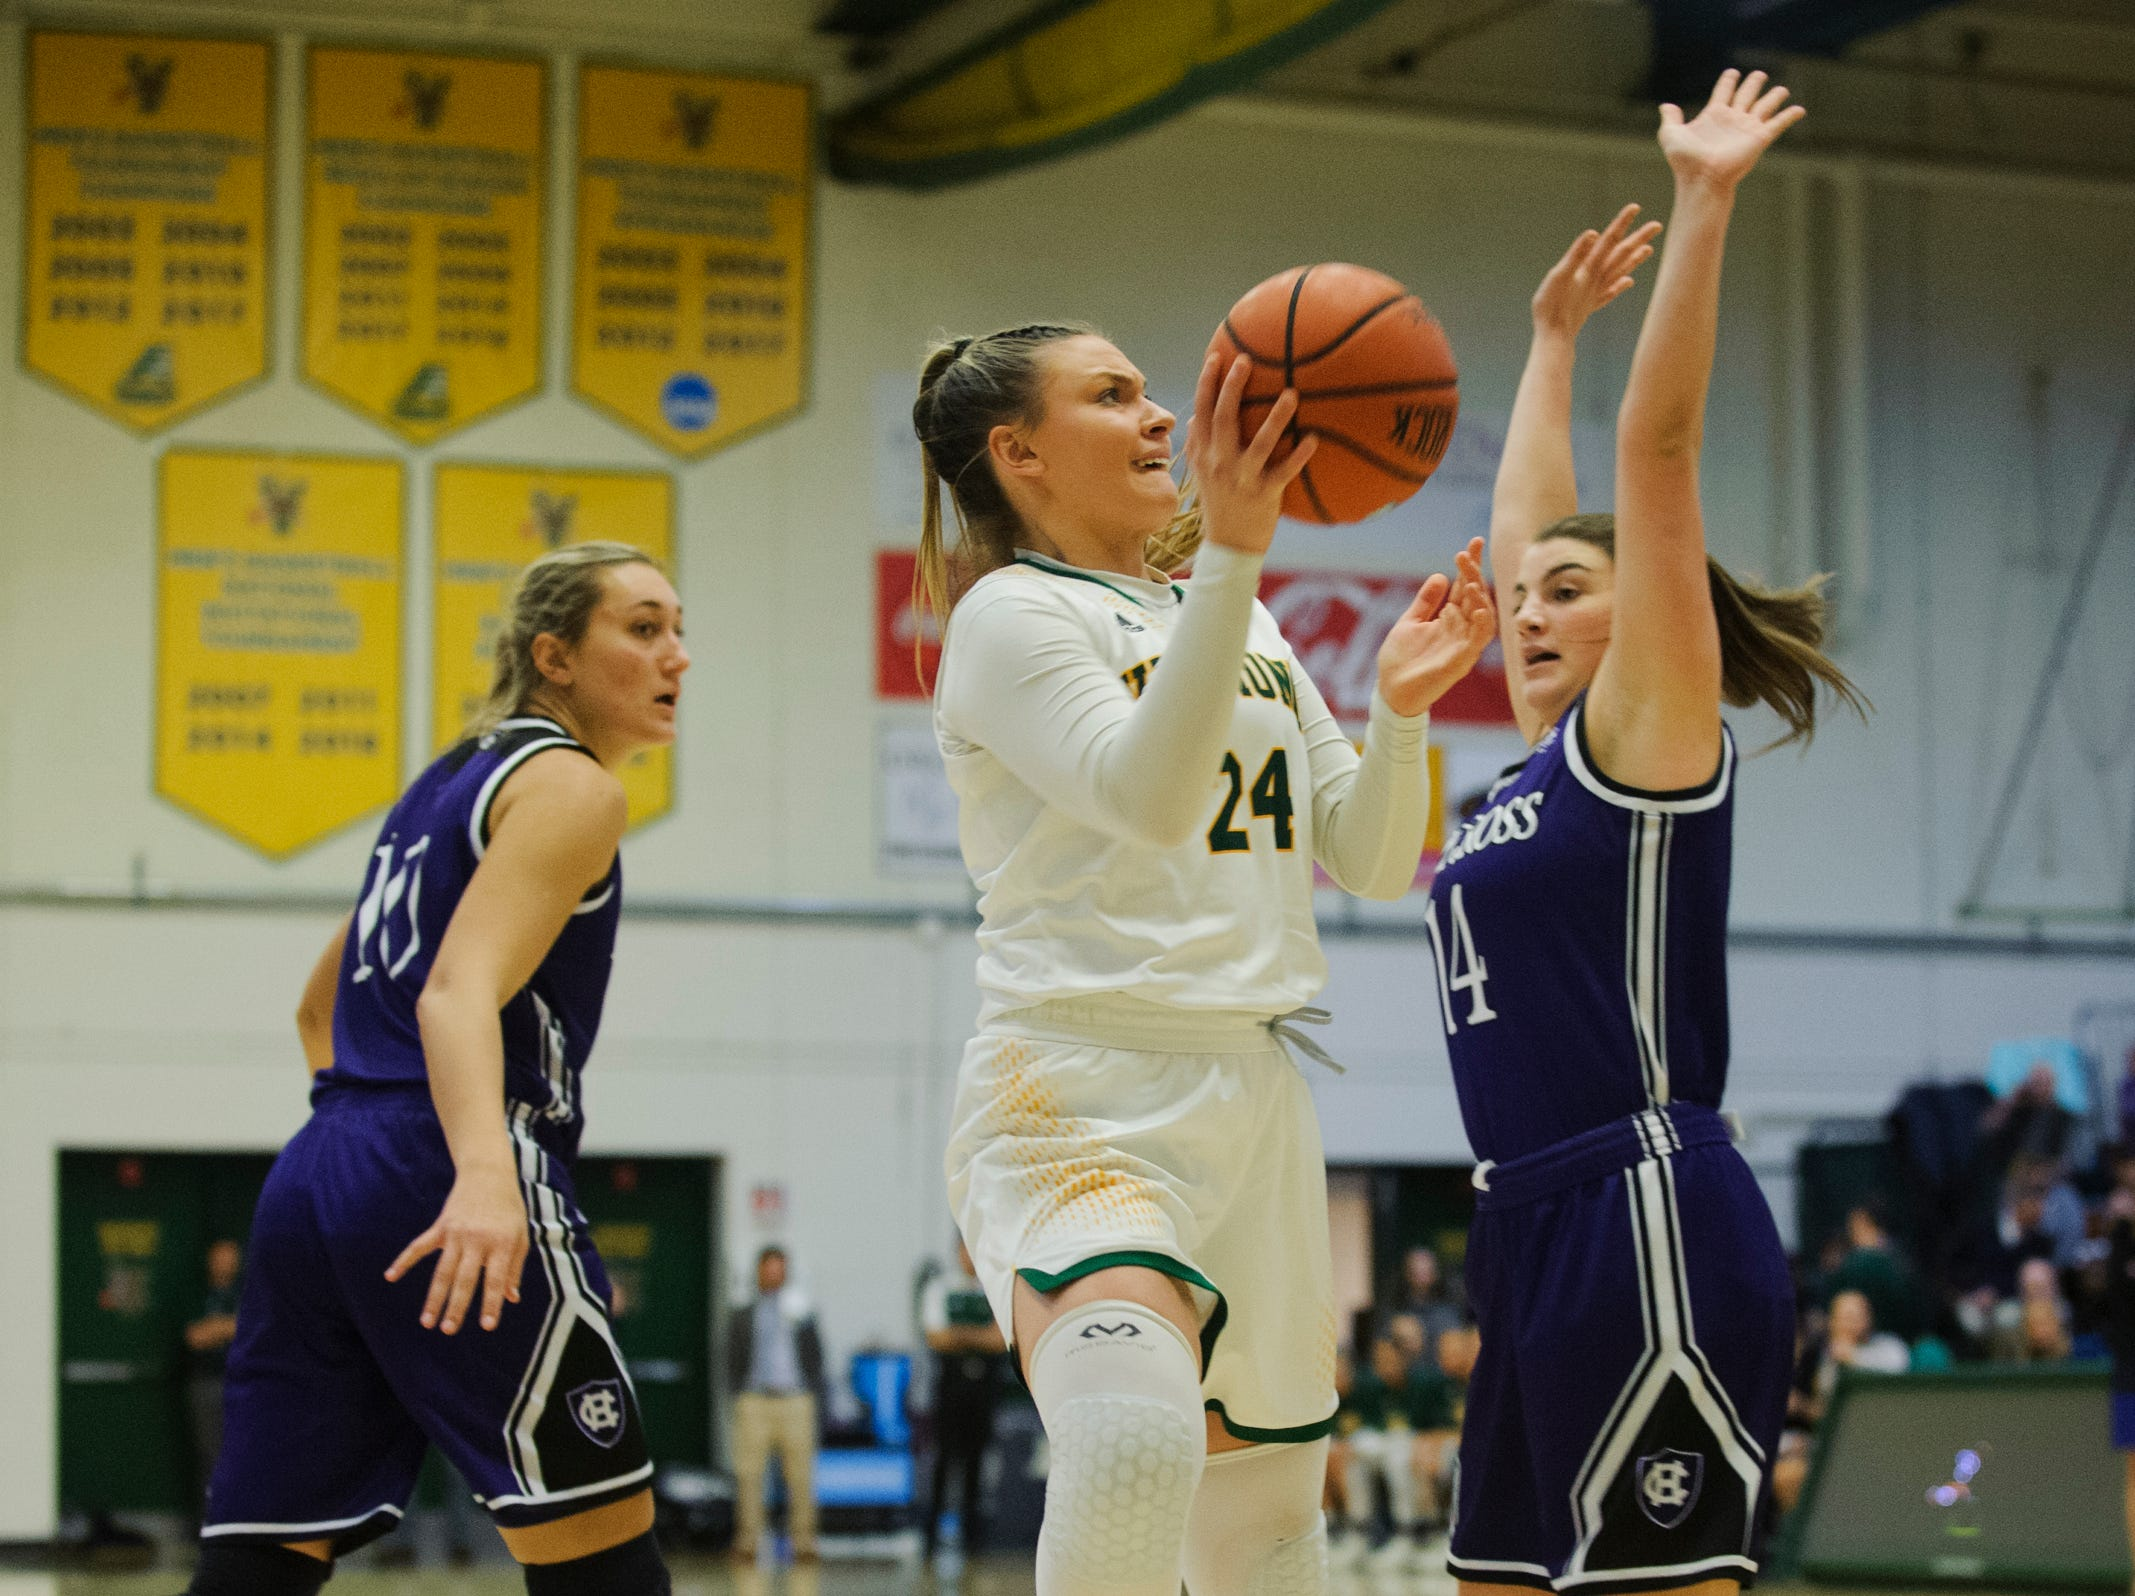 Vermont's Rose Caverly (24) leaps for a lay up during the women's basketball game between the Holy Cross Crusaders and the Vermont Catamounts at Patrick Gym on Wednesday night November 28, 2018 in Burlington.